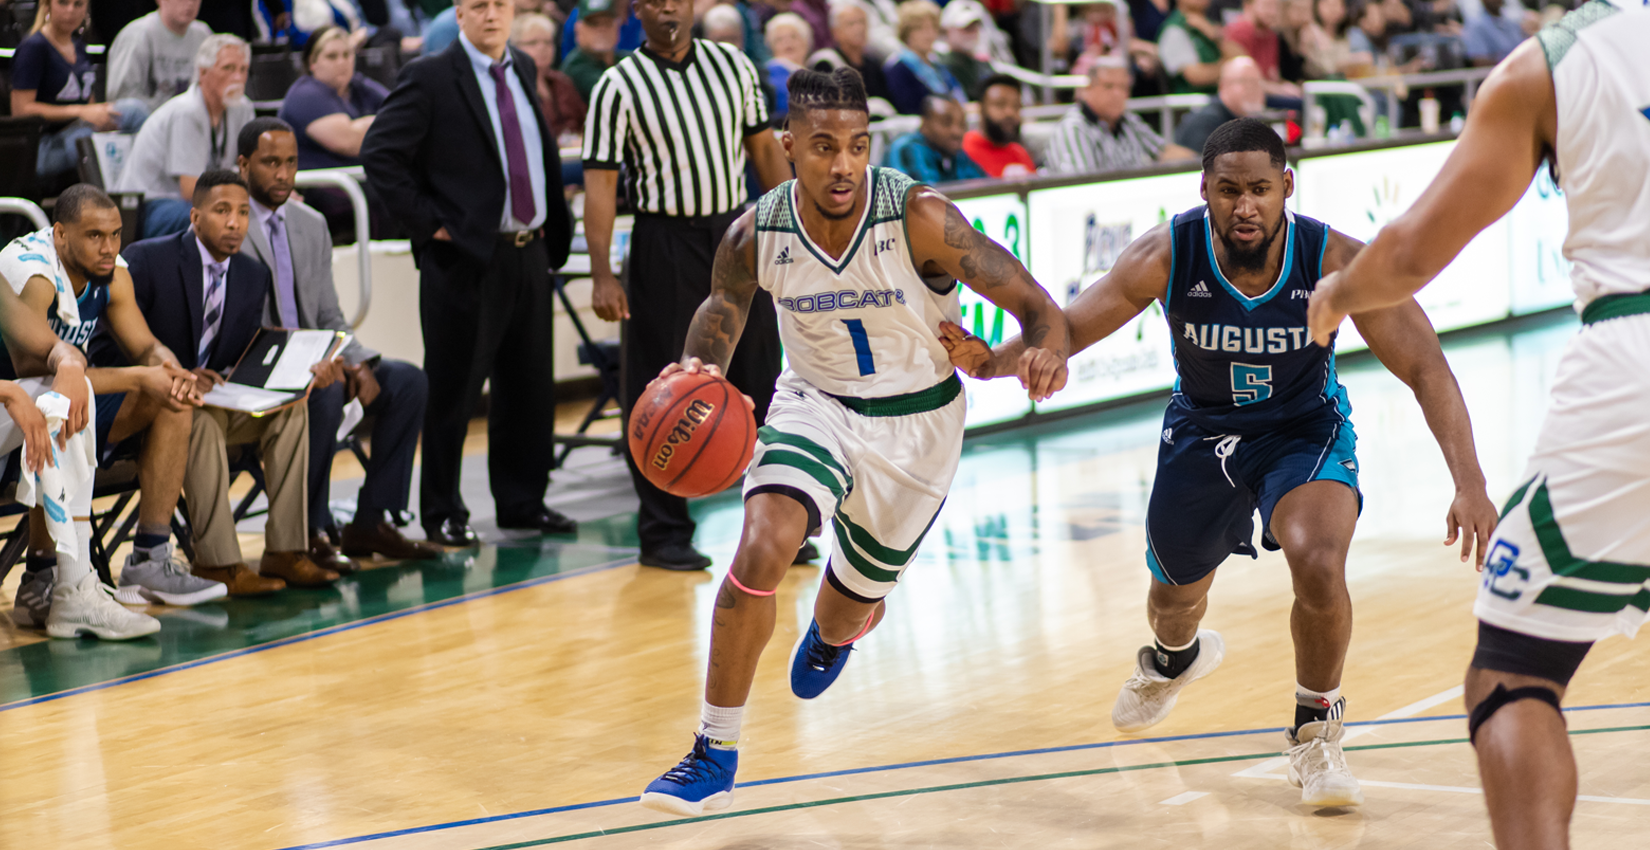 Bobcat Men's Basketball Starts New Season Friday